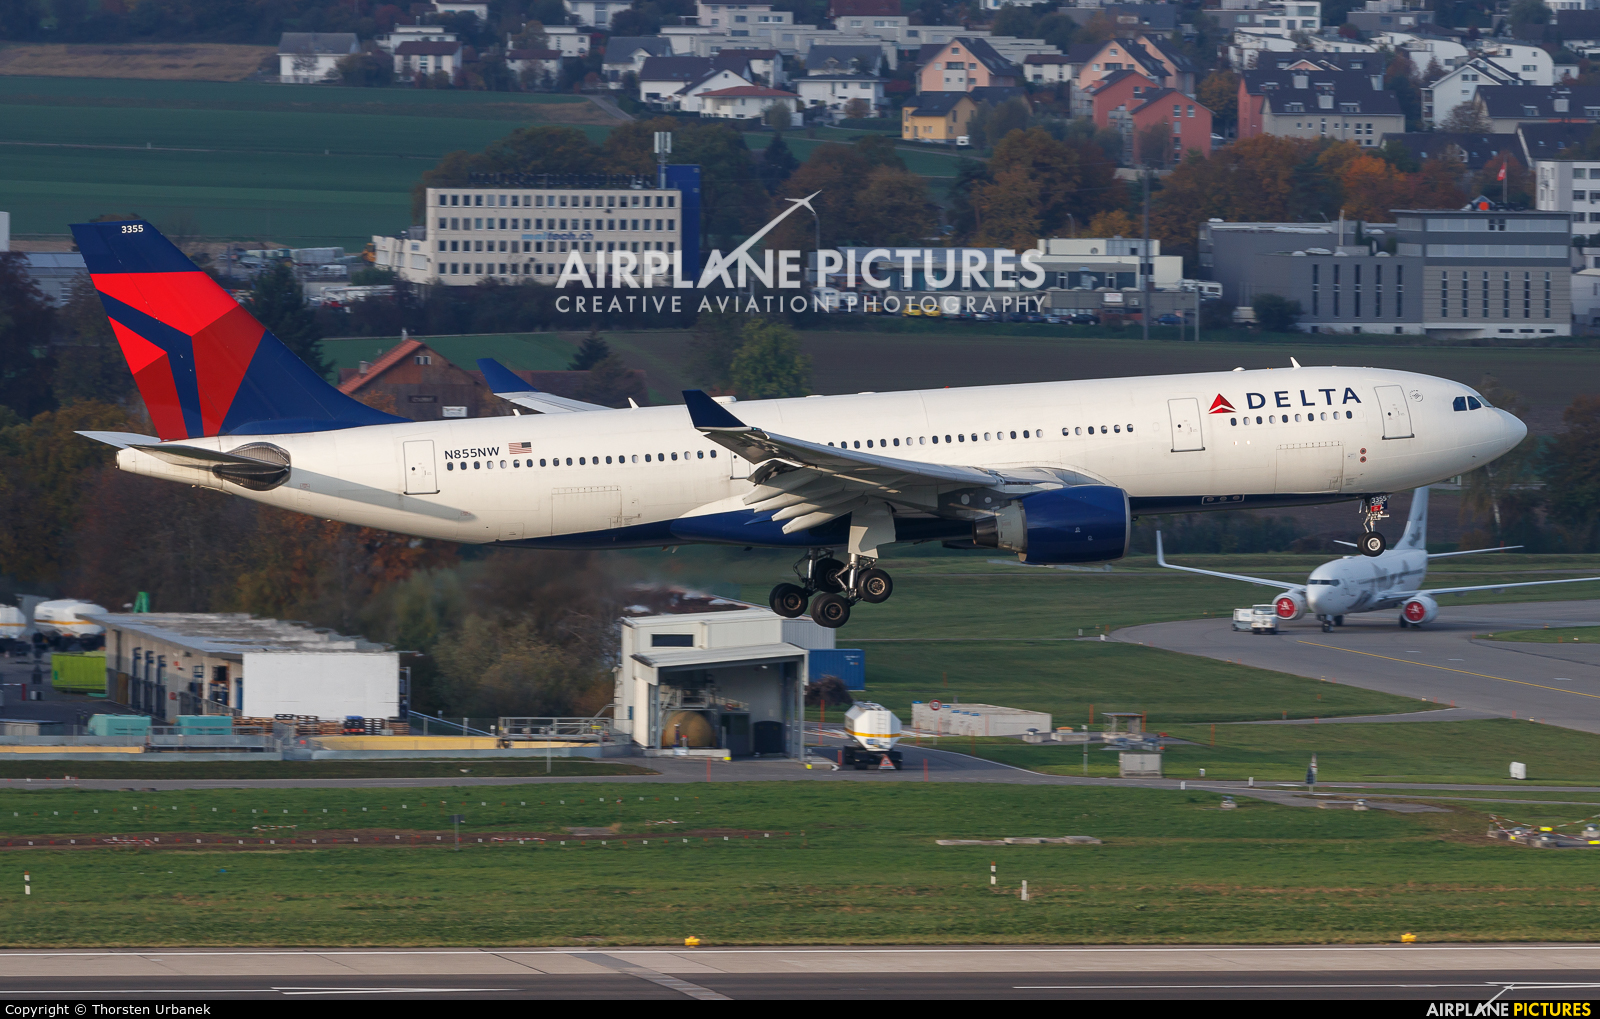 Delta Air Lines N855NW aircraft at Zurich